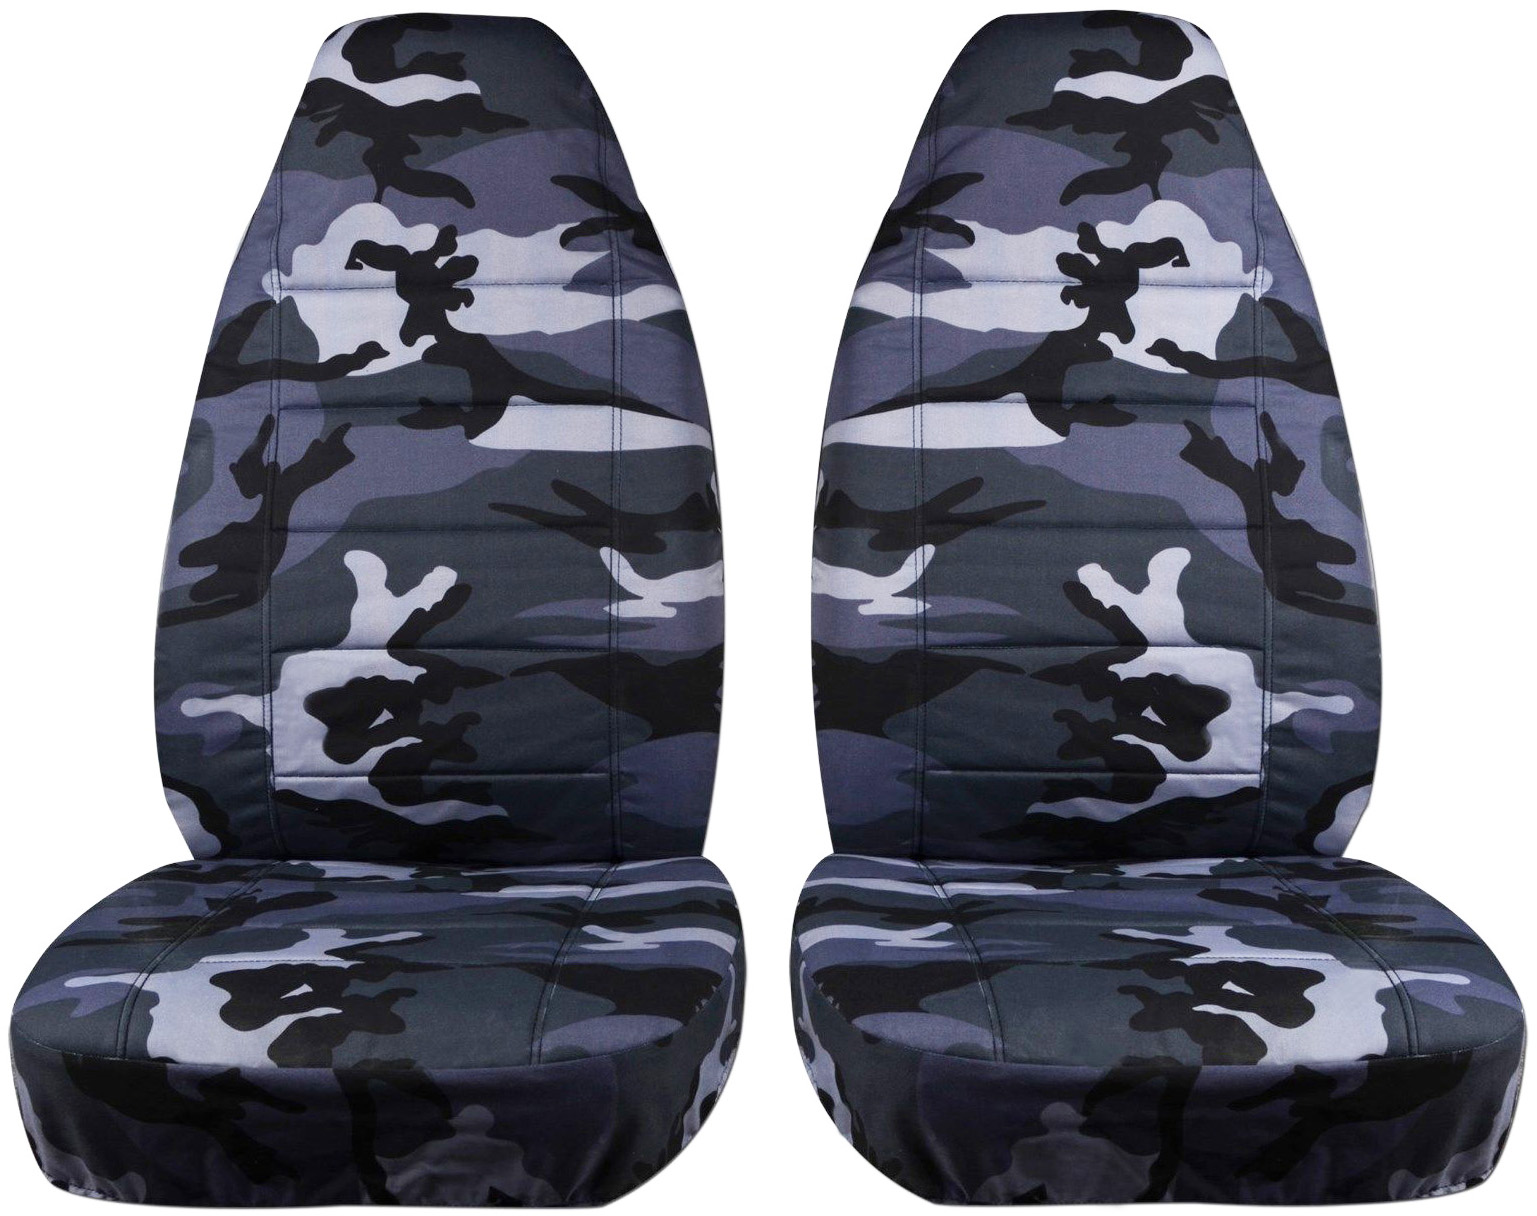 camouflage car seat covers front semi custom tree digital army 16 camo print ebay. Black Bedroom Furniture Sets. Home Design Ideas